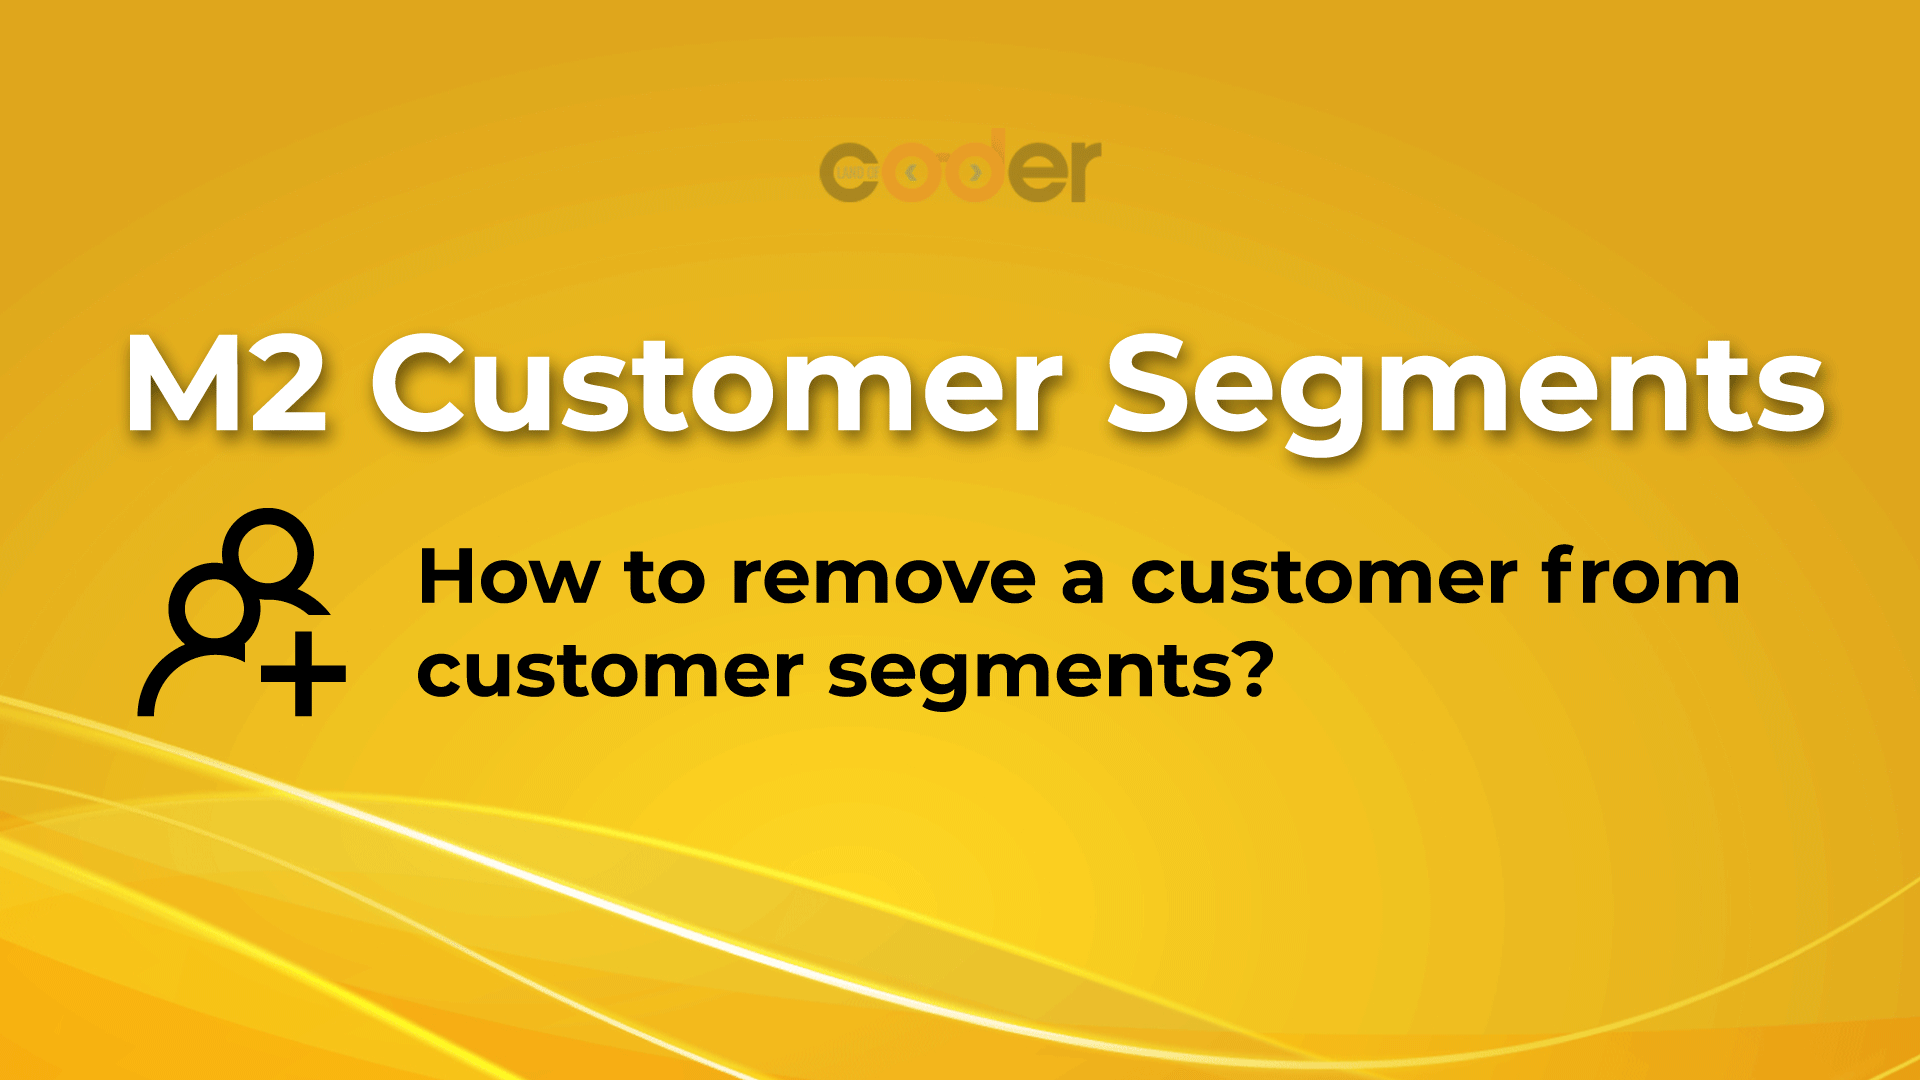 How To remove a customer from customer segmentation